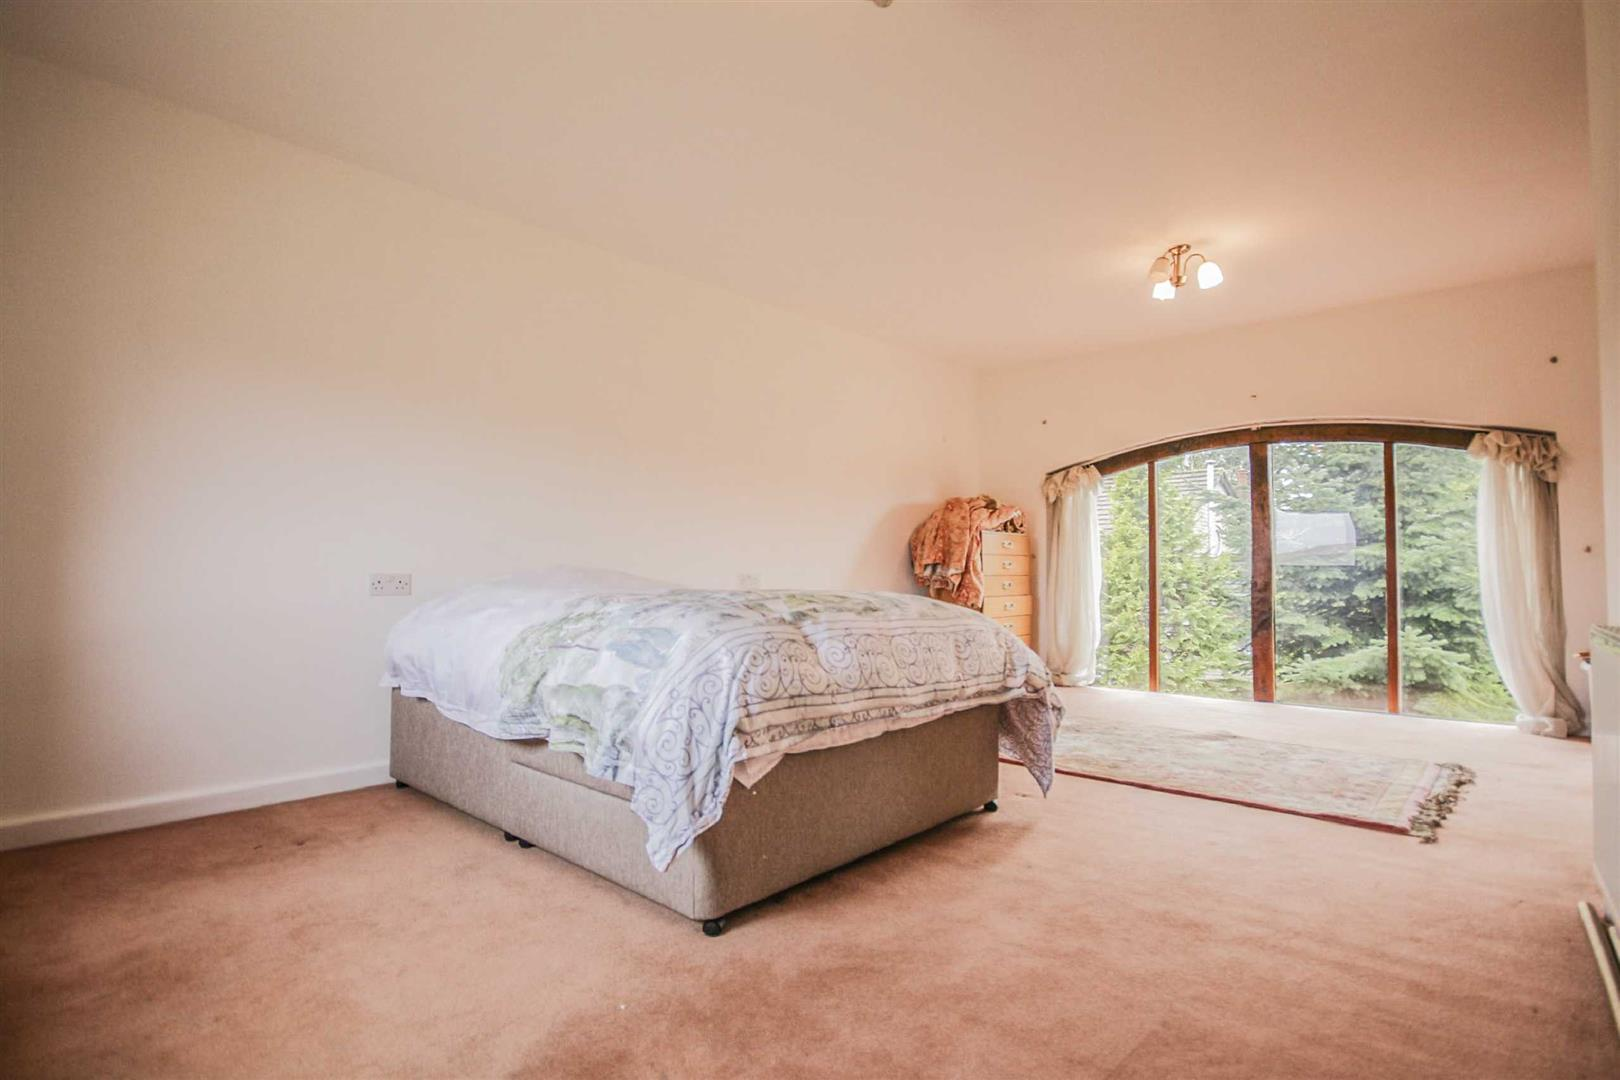 3 Bedroom Barn Conversion For Sale - Image 9